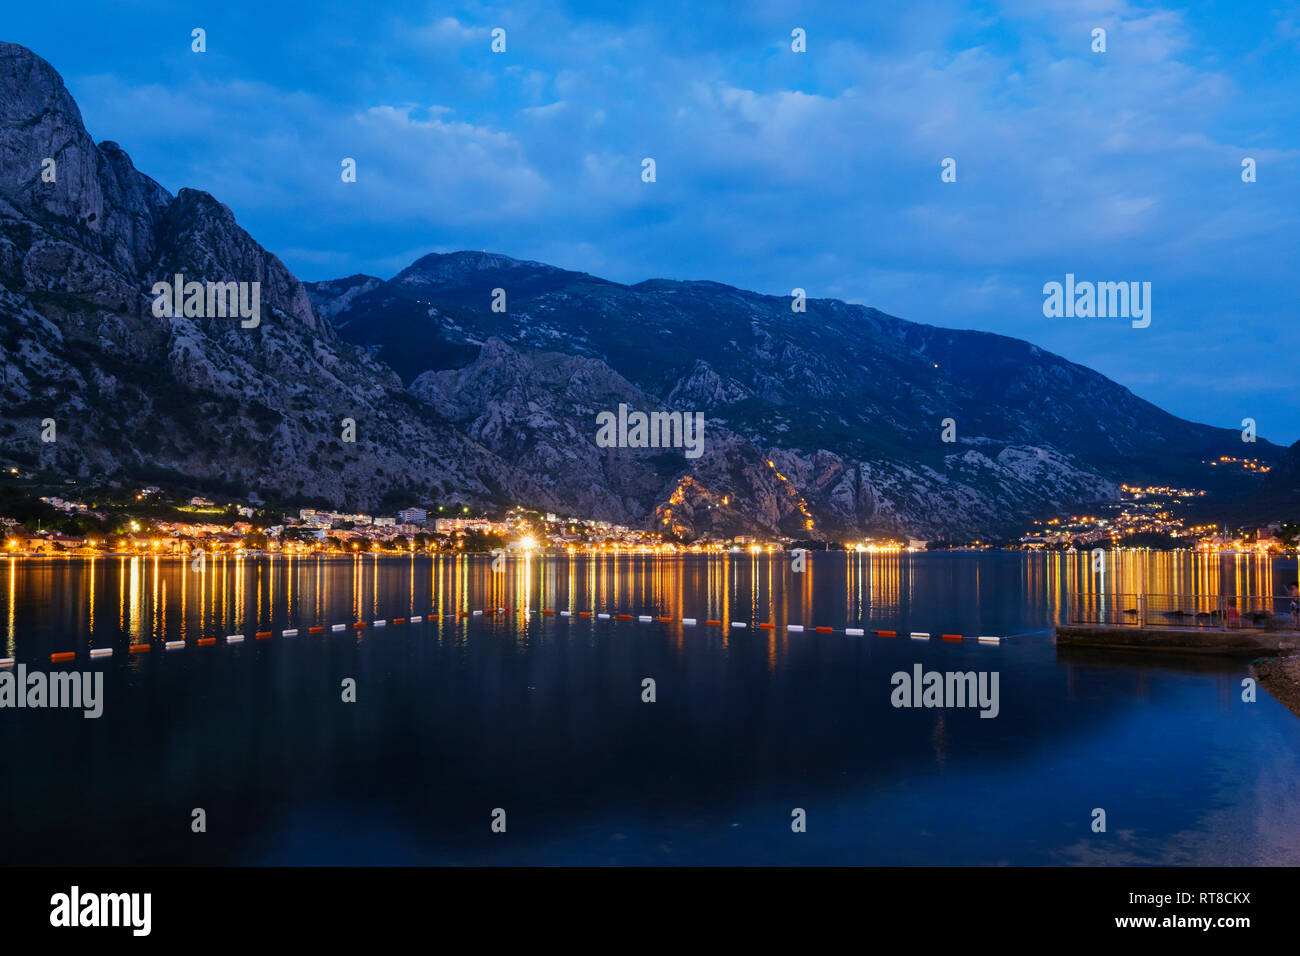 Montenegro, Bay of Kotor, Dobrota and Kotor at blue hour - Stock Image